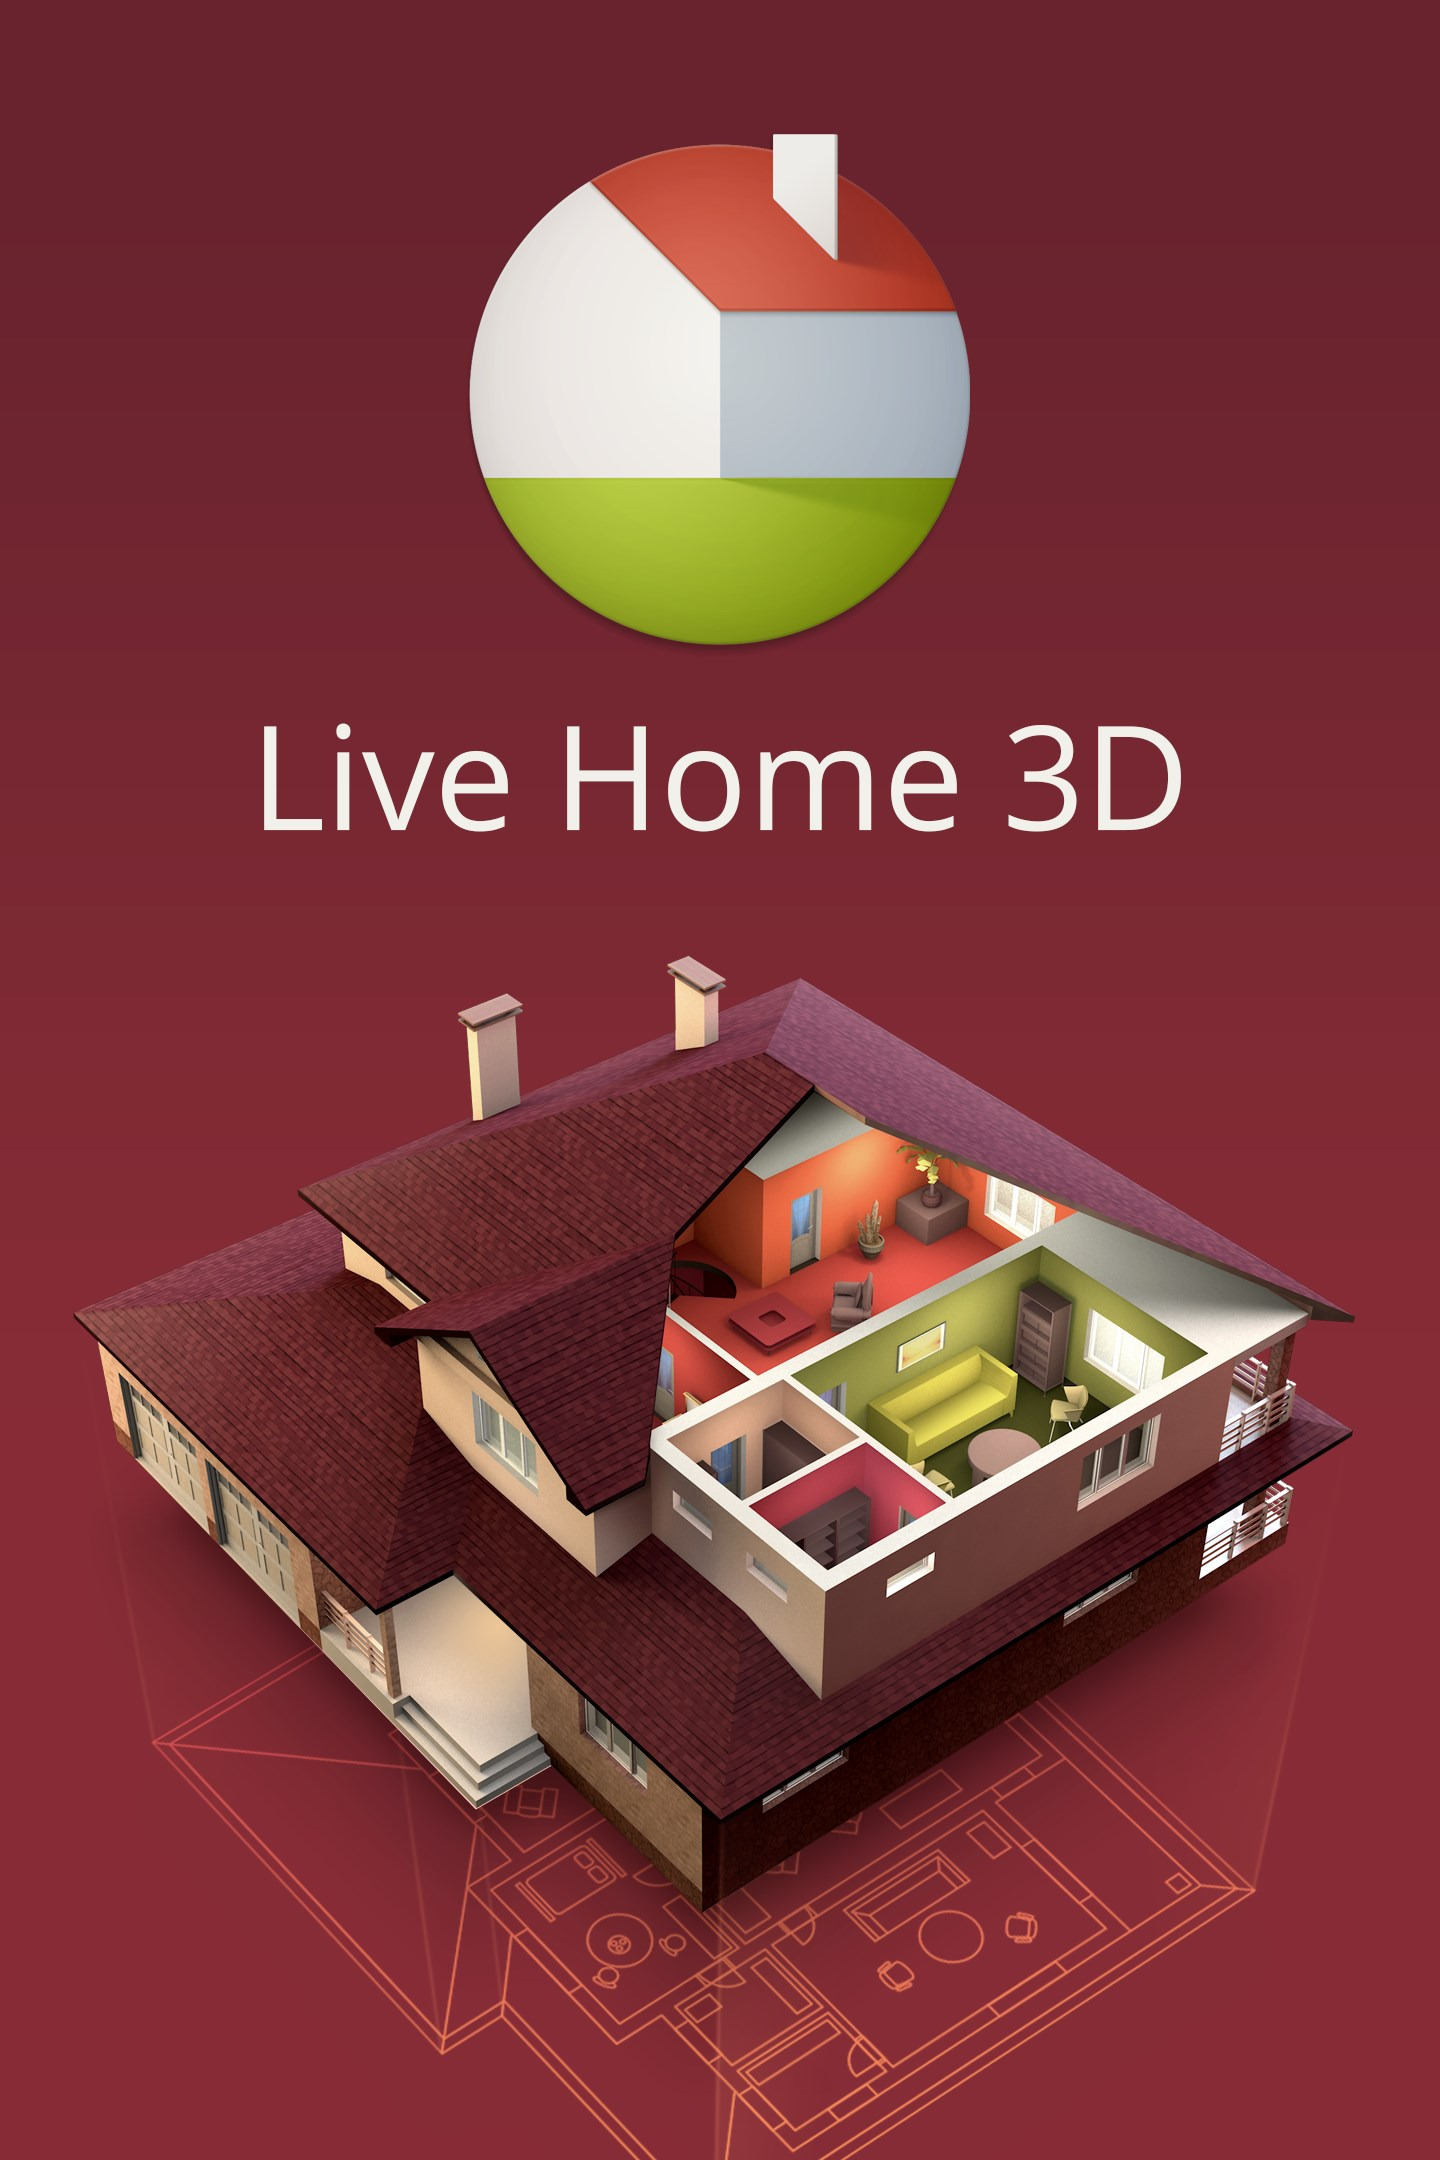 House Plans software Free Download Inspirational Get Live Home 3d Microsoft Store